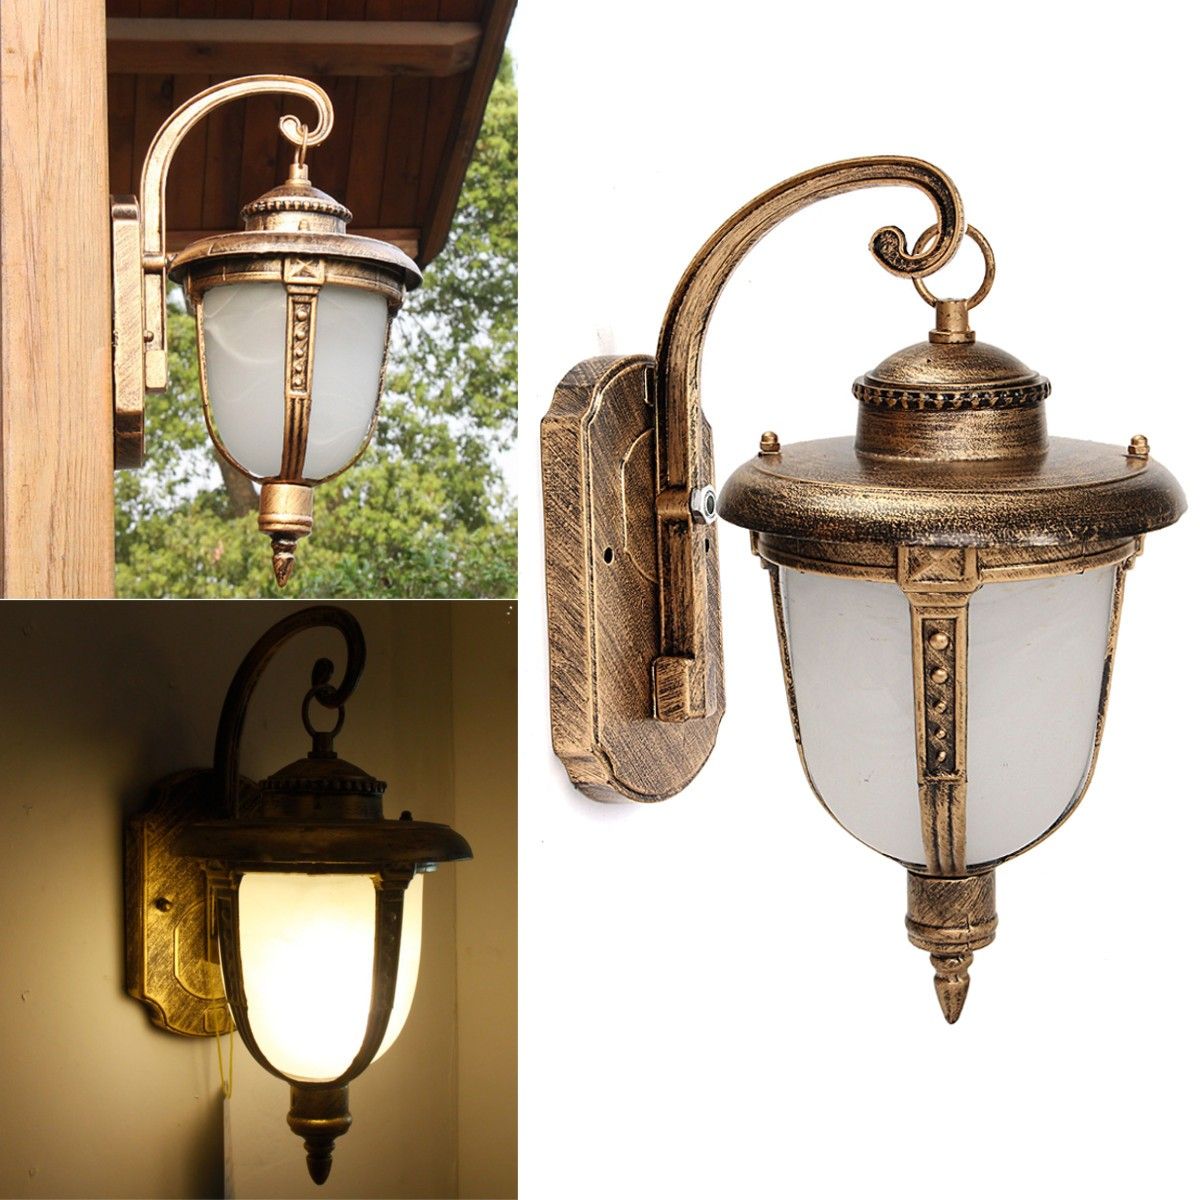 Outdoor porch lantern vintage wall light fixture aluminum for Vintage exterior light fixtures